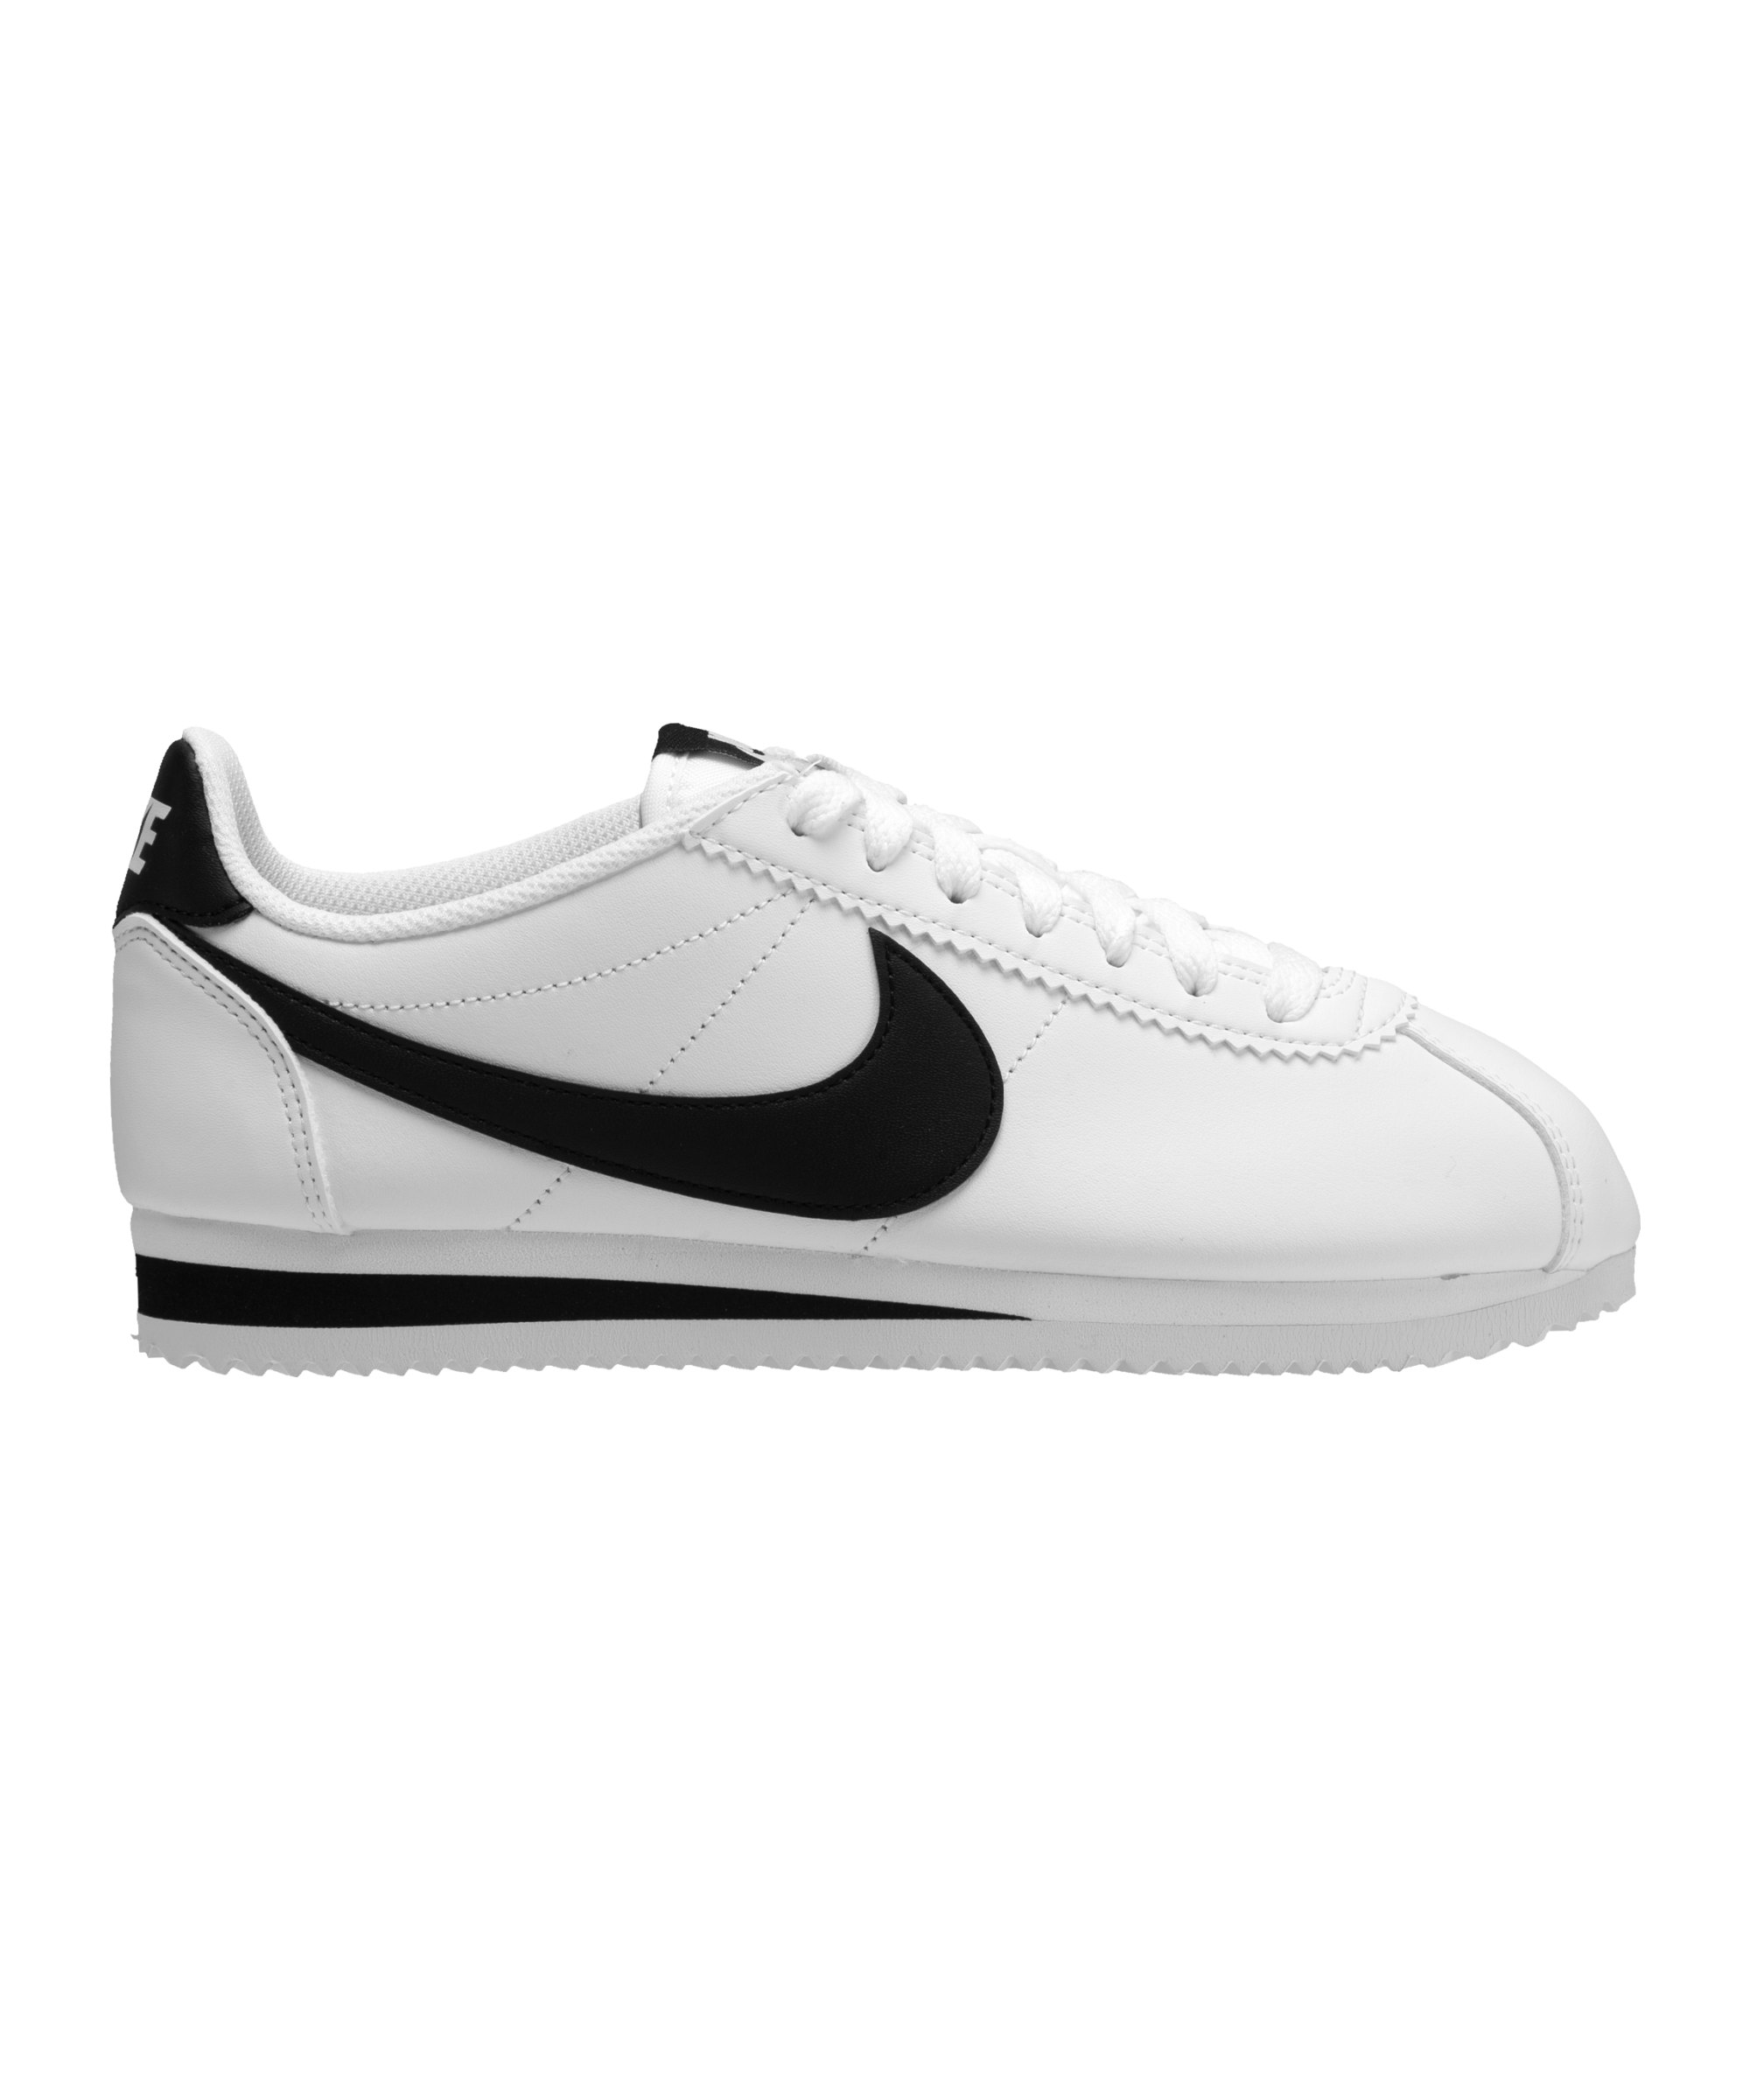 nike classic cortez leder sneaker damen weiss f101. Black Bedroom Furniture Sets. Home Design Ideas